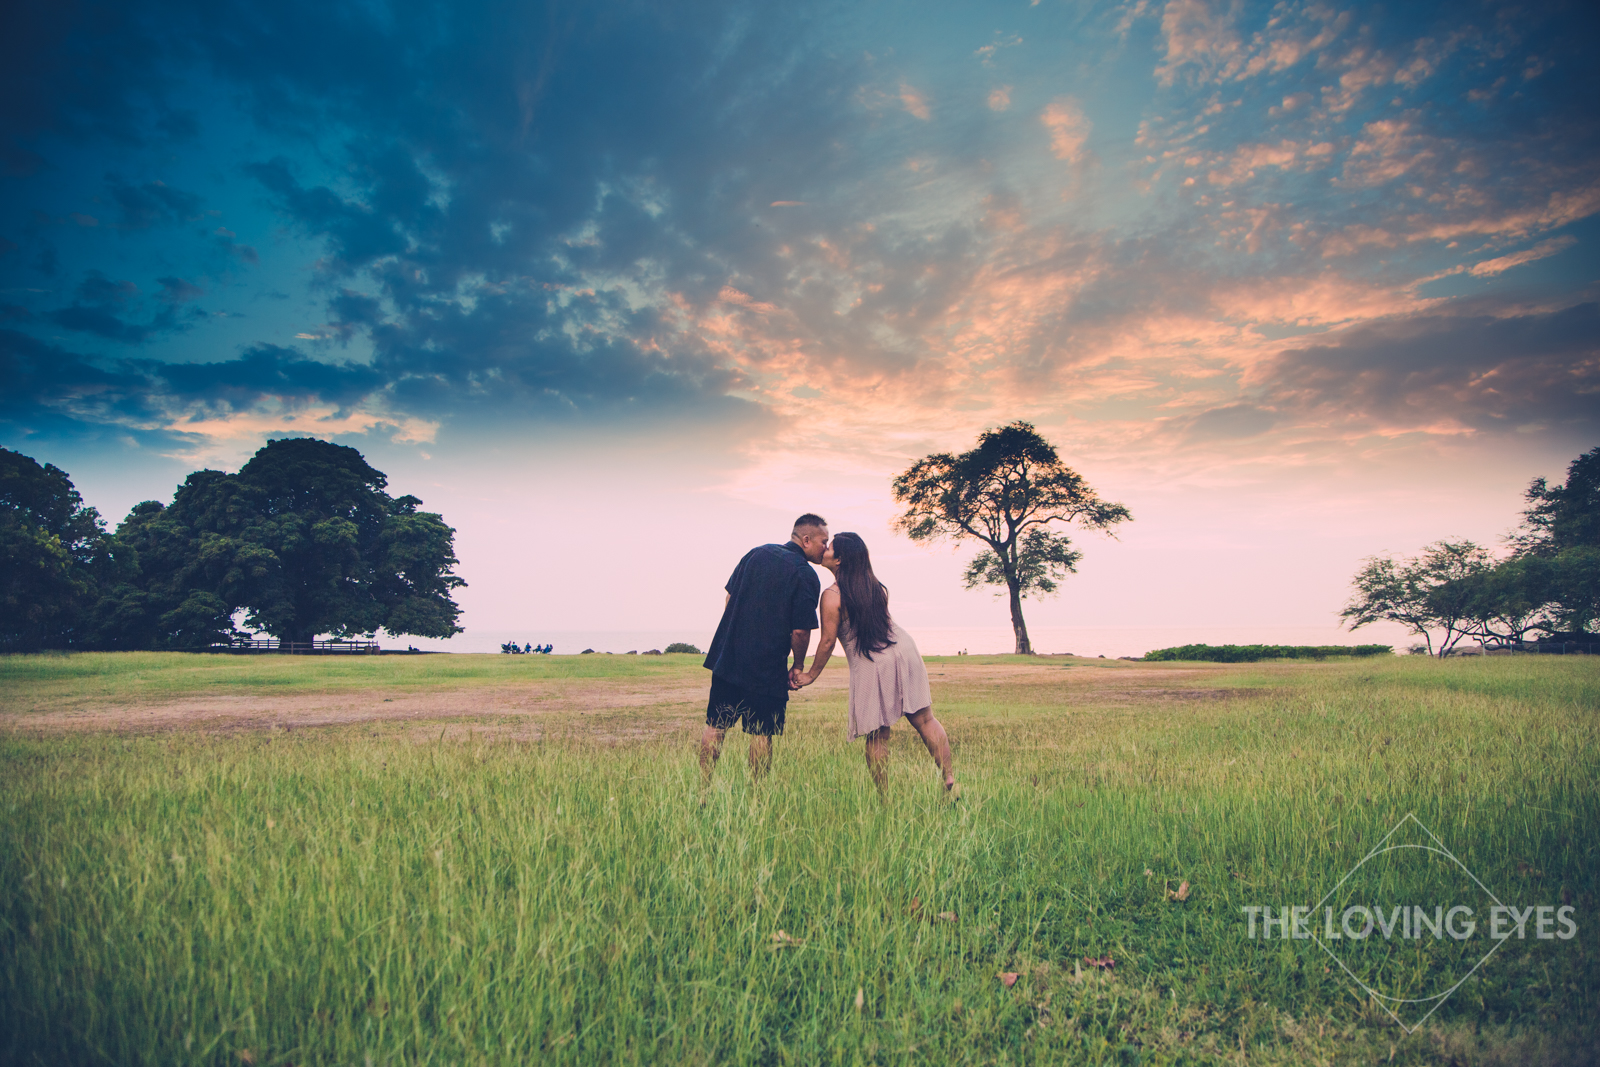 Jeana_and_Clyde_Engagement-14.jpg